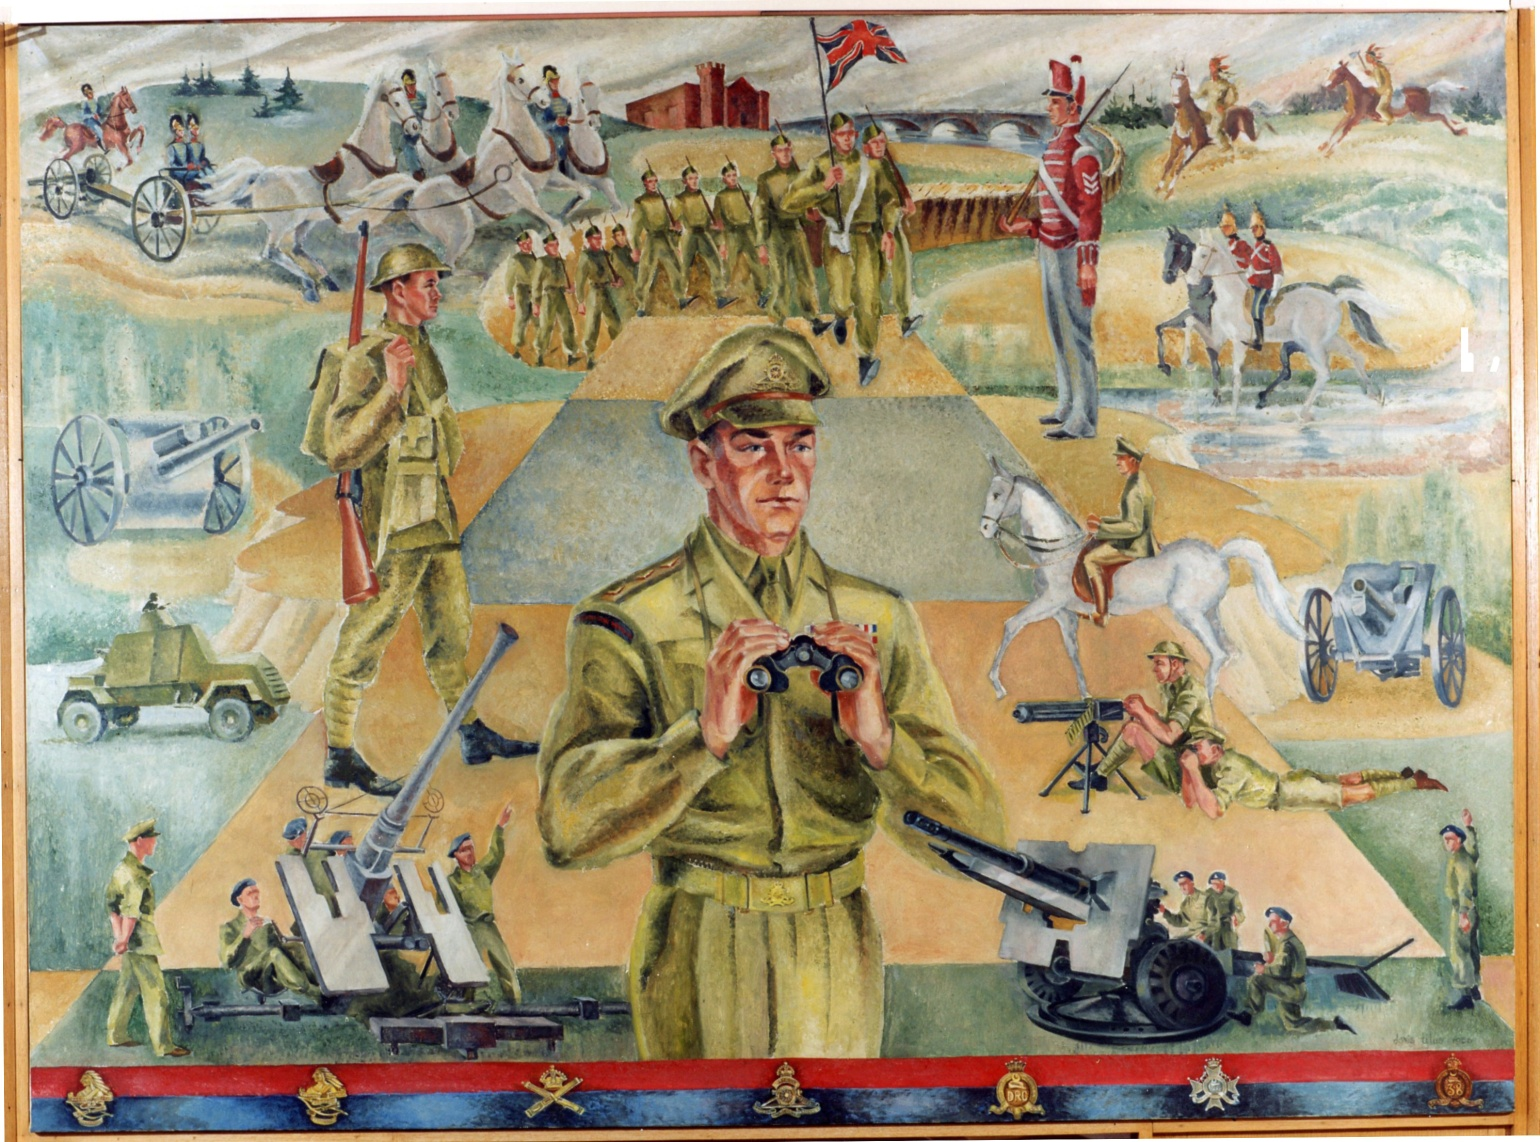 C:\Users\Robert\Documents\CANADIAN CARTOONING ILLUSTRATION and ANIMATION\IMAGE BY CARTOONIST\1956 TITUS Doris, mural- 56th Field Artillery Regt history fixed.jpg